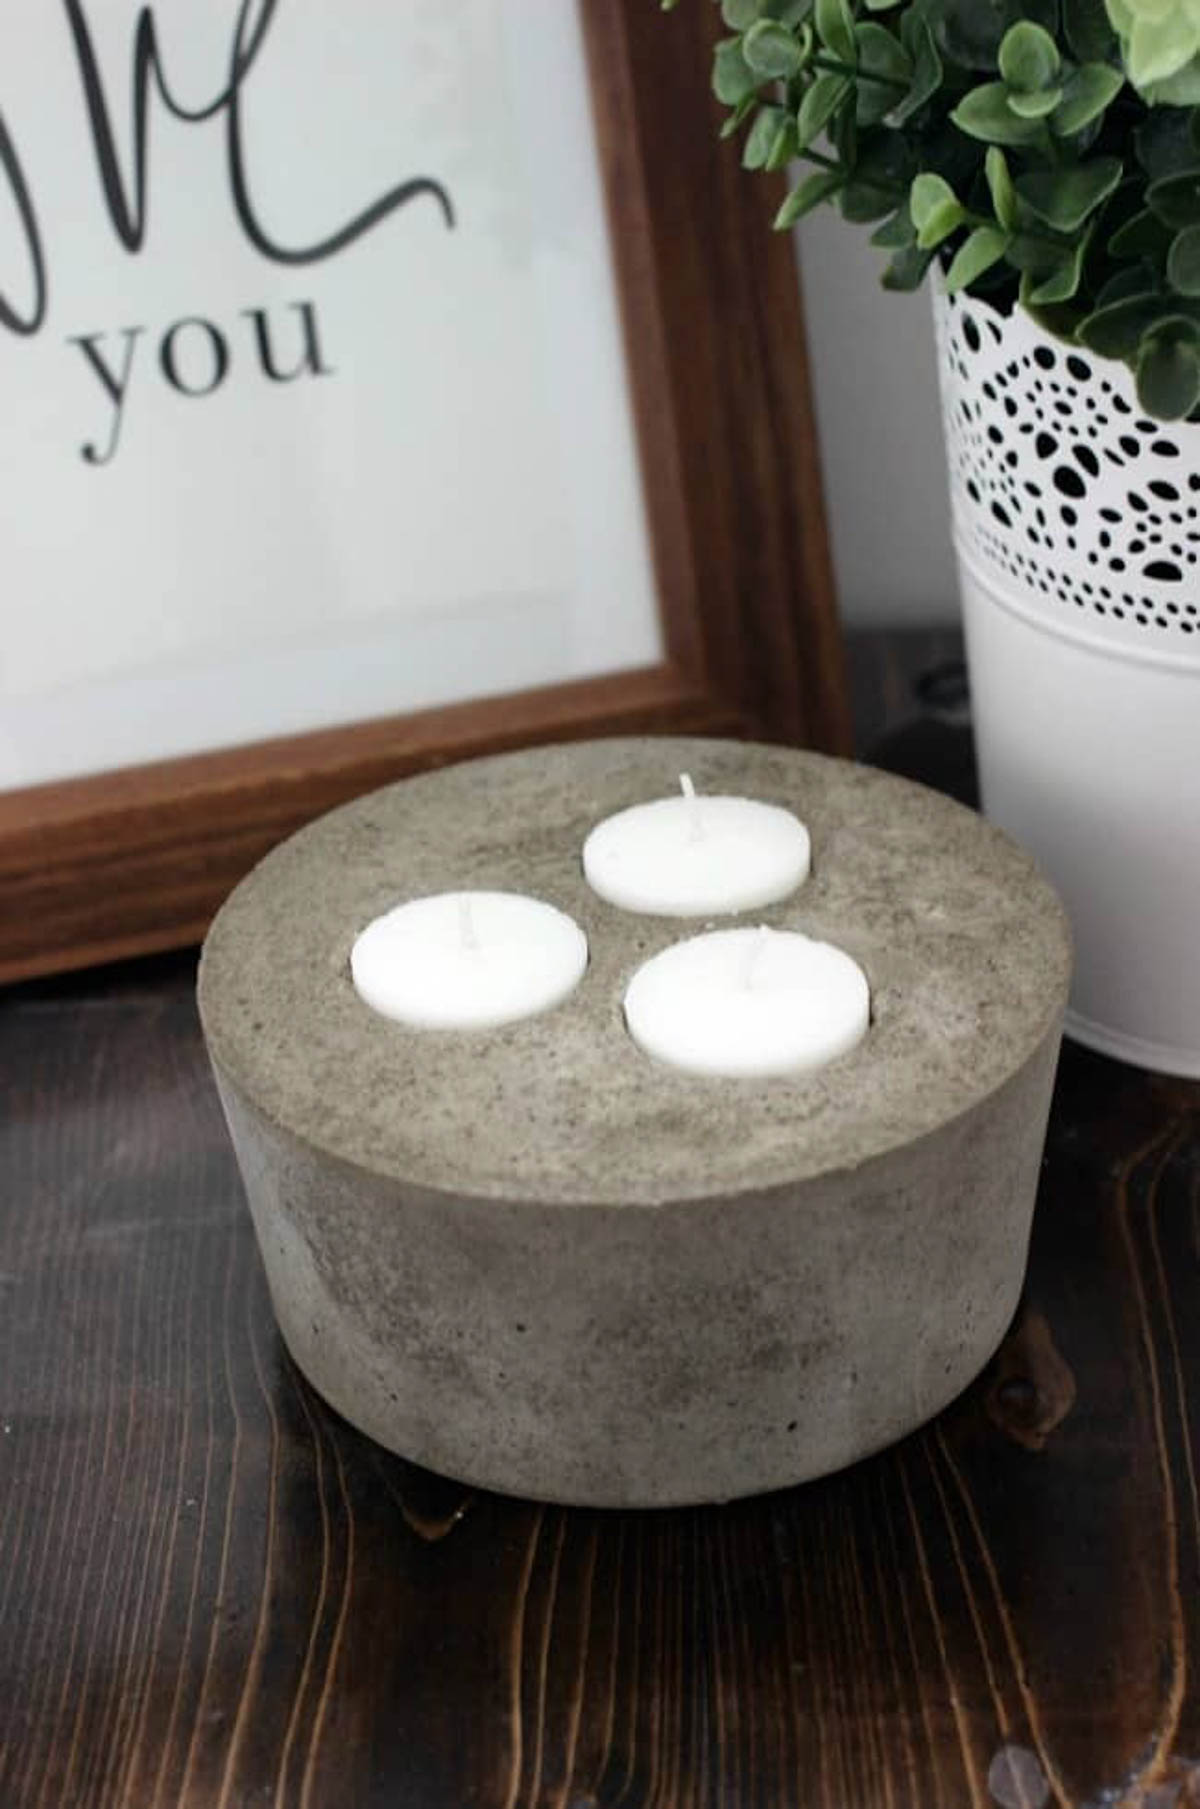 Concrete candle holder with tea light candles